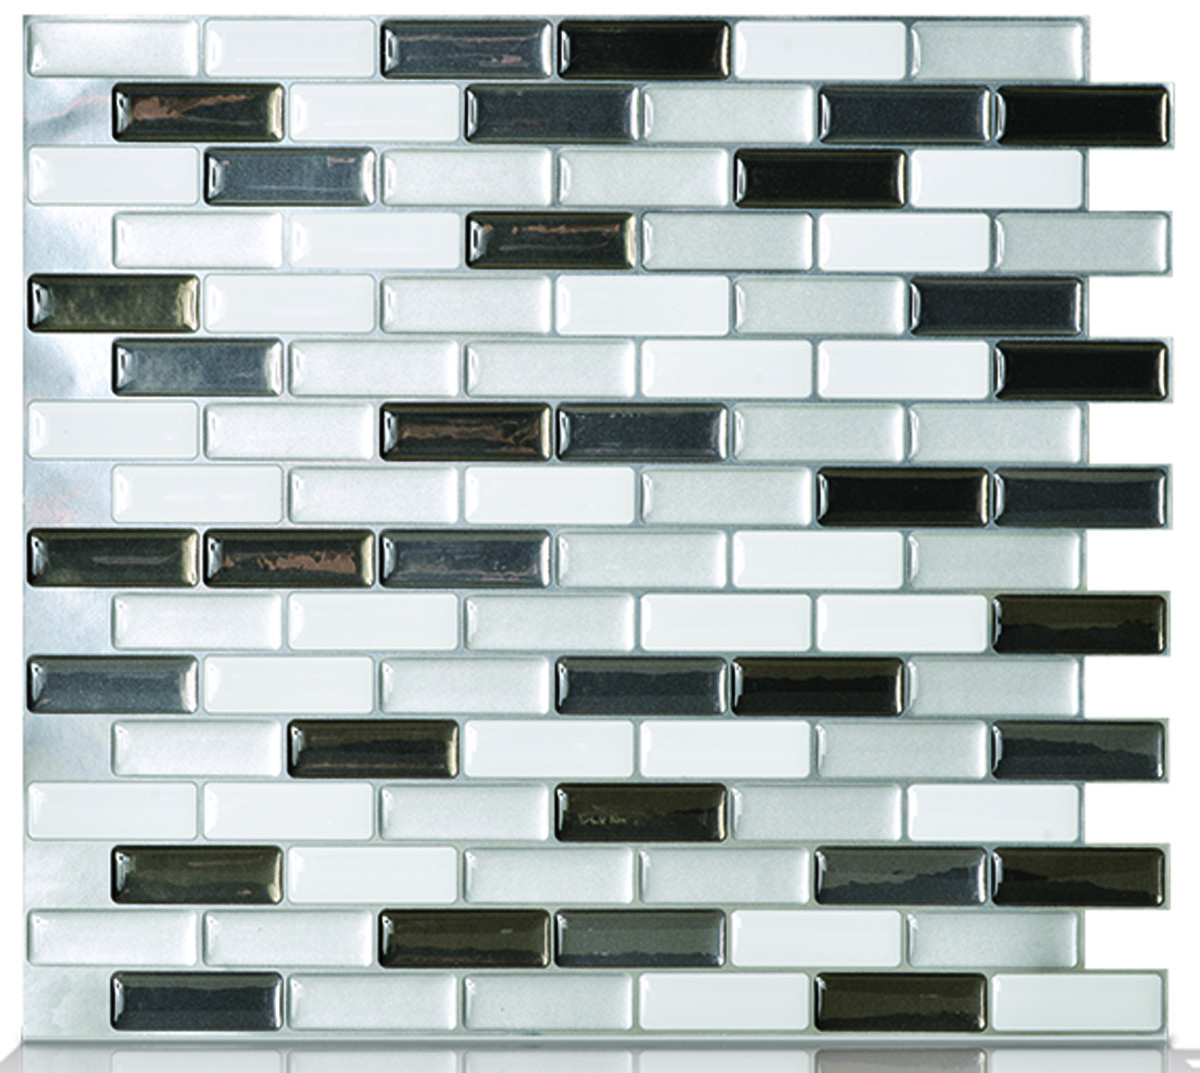 Quinco SM1030-1 Smart Tiles Metallik Murano Mosaik Self Adhesive ...